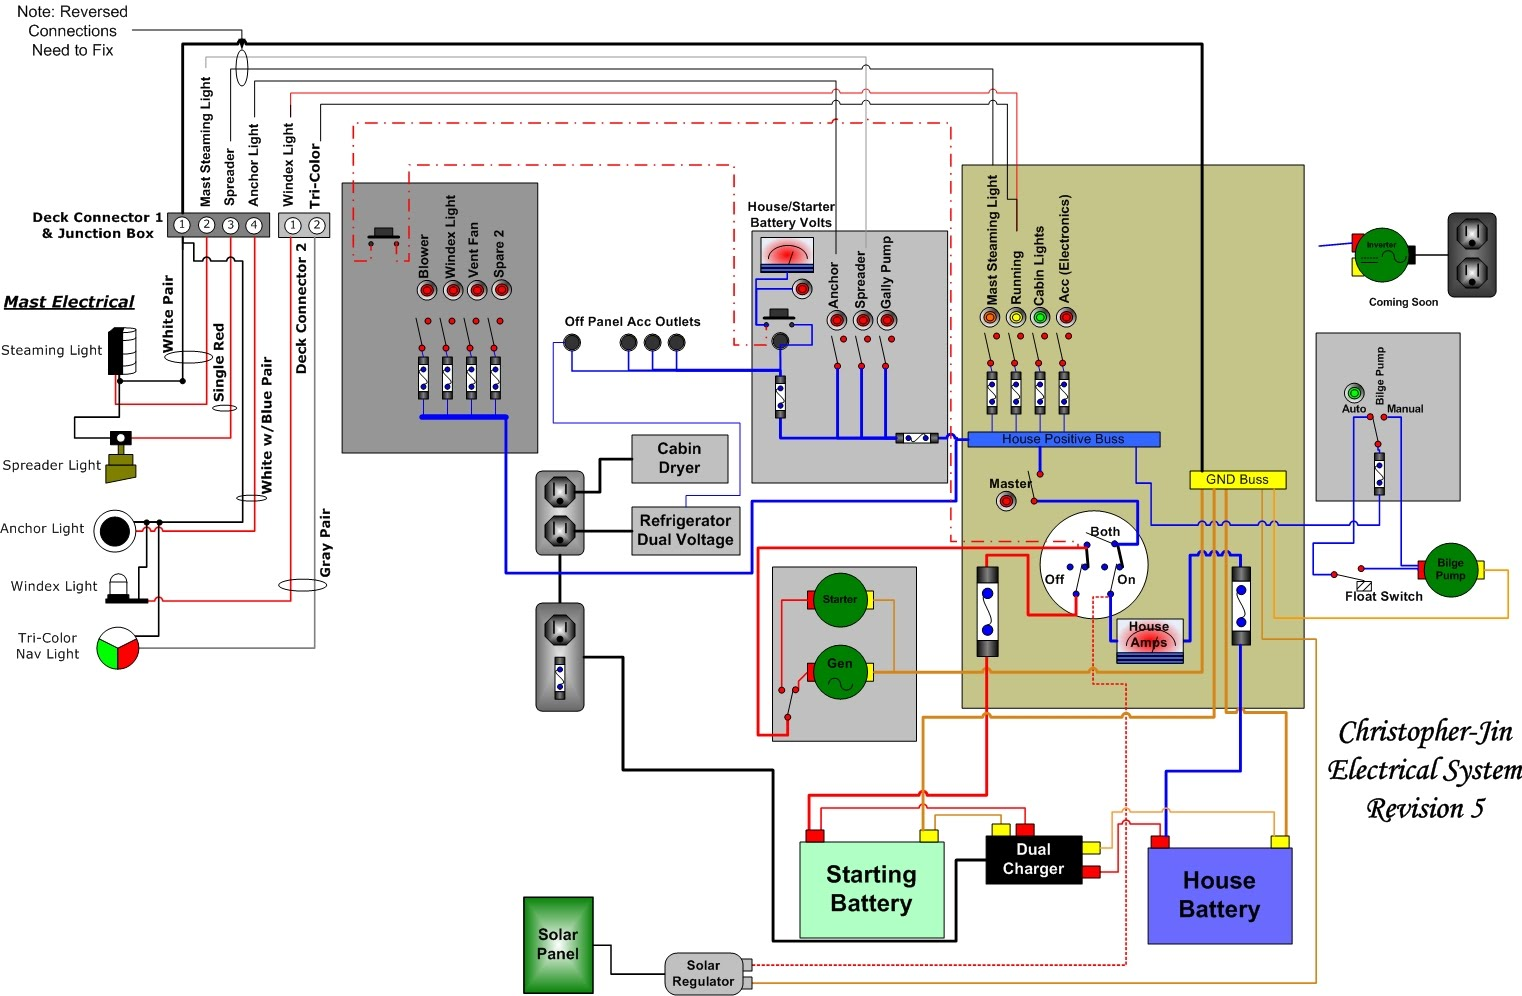 catalina 22 electrical wiring diagram [ 1117 x 731 Pixel ]